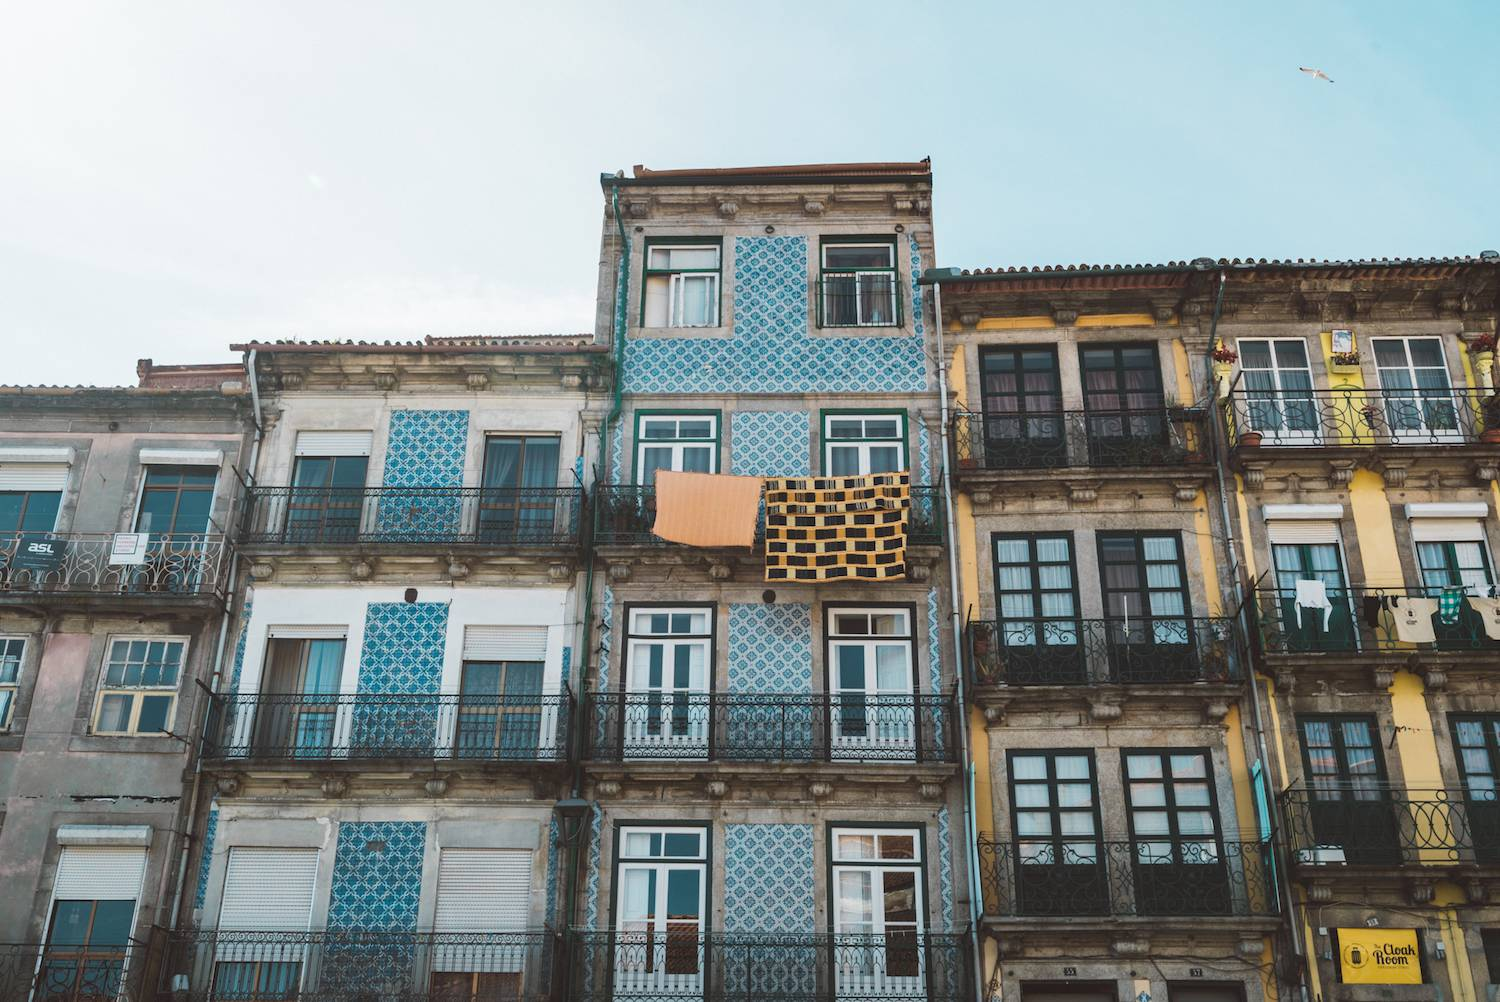 Beautiful buildings in Porto Portugal